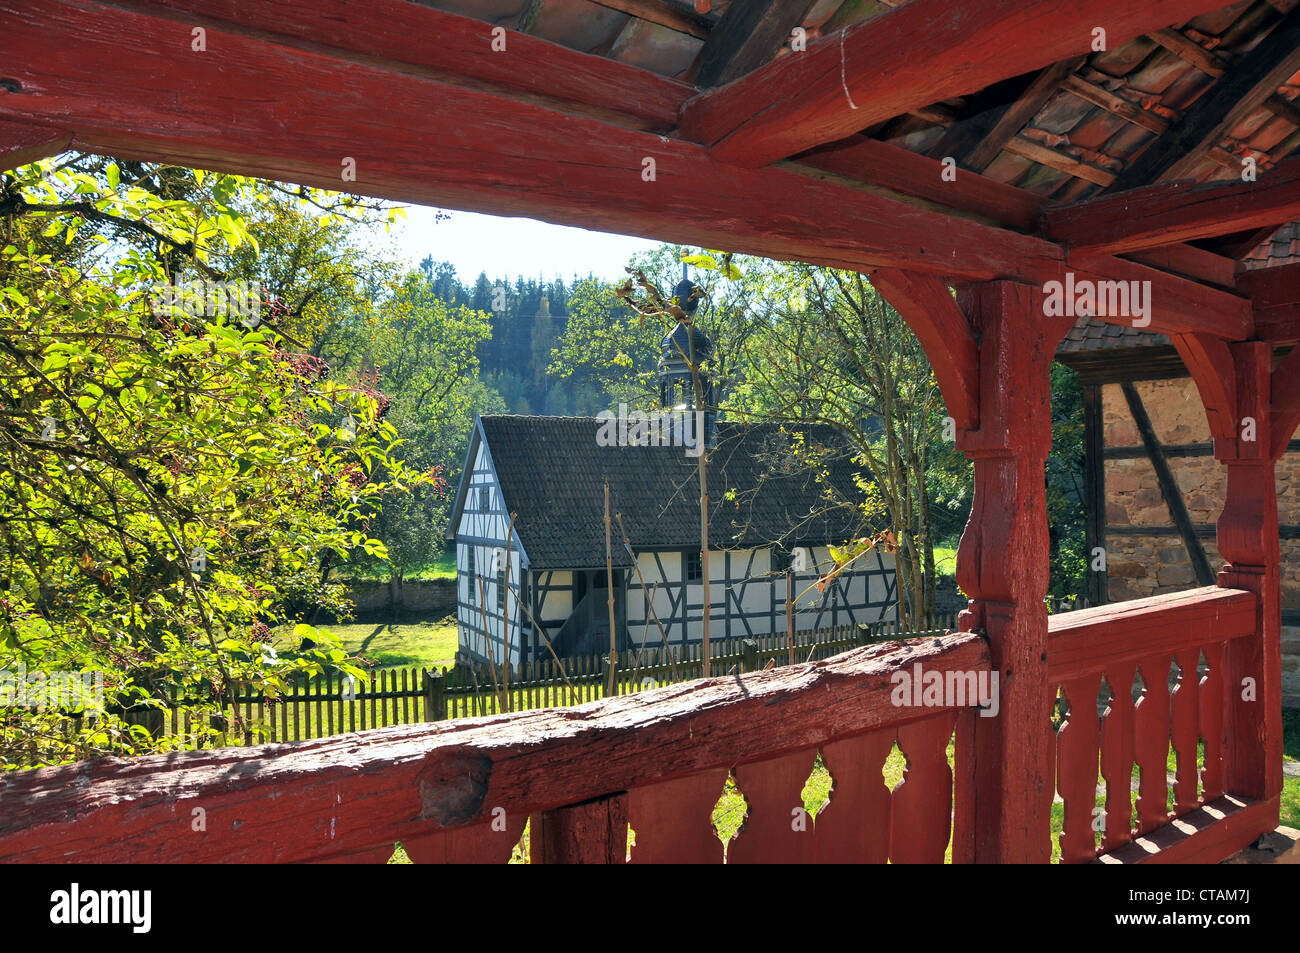 Open air museum Vessra Abbey, Thuringian Forest, Thuringia, Germany - Stock Image